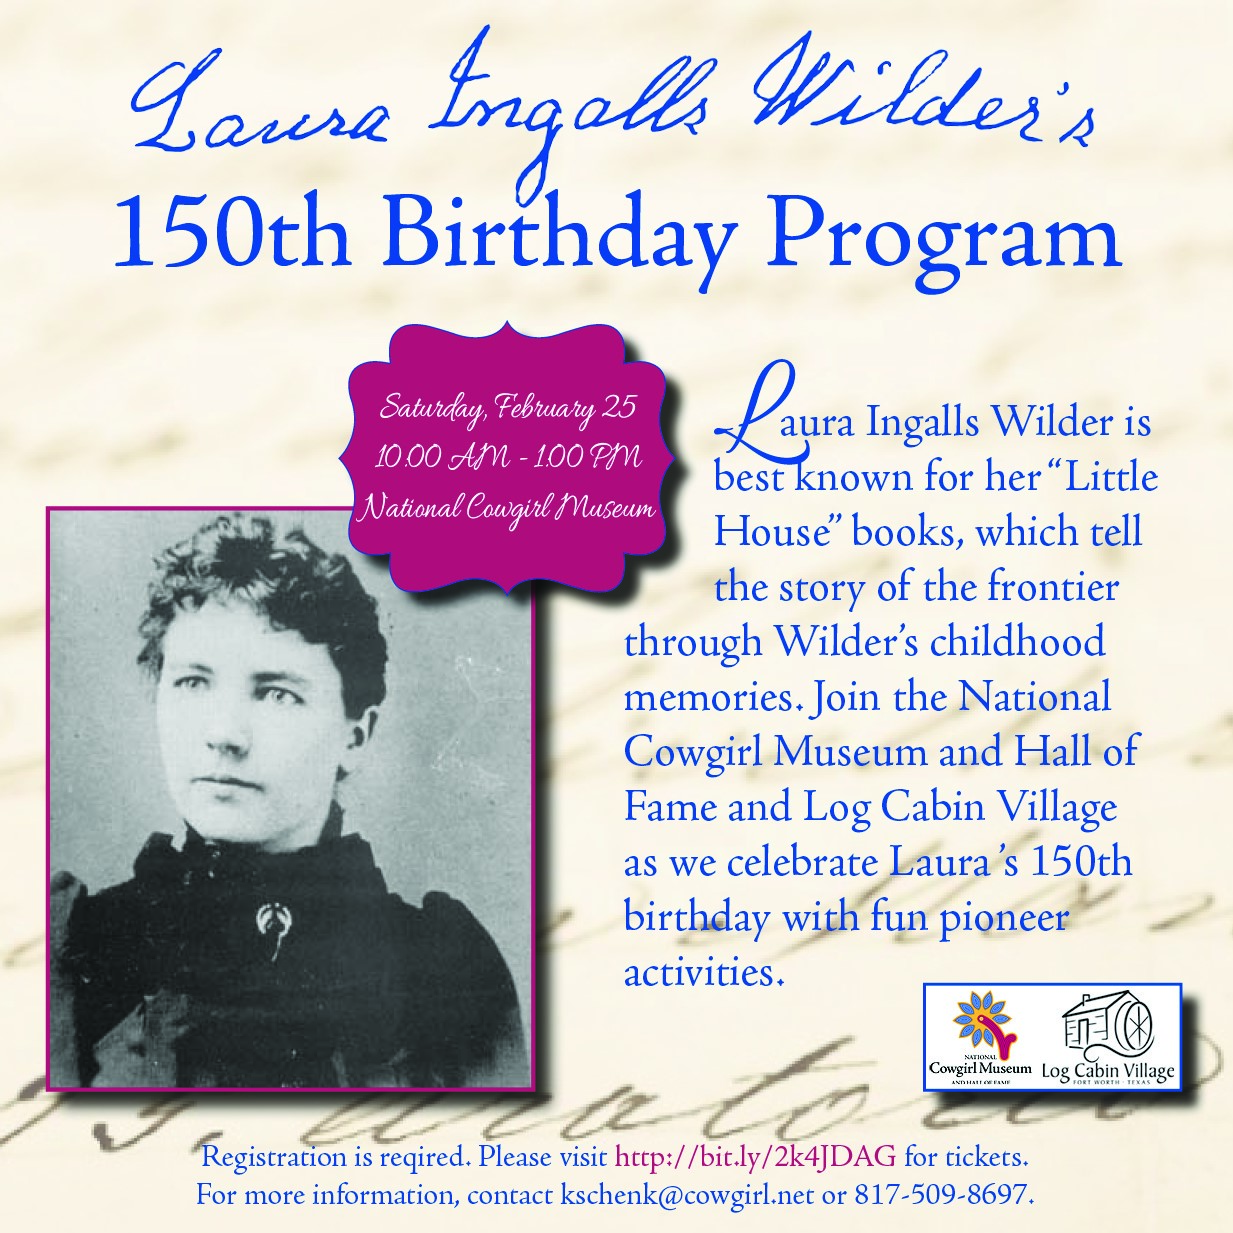 Laura Ingalls Wilder 150th Birthday